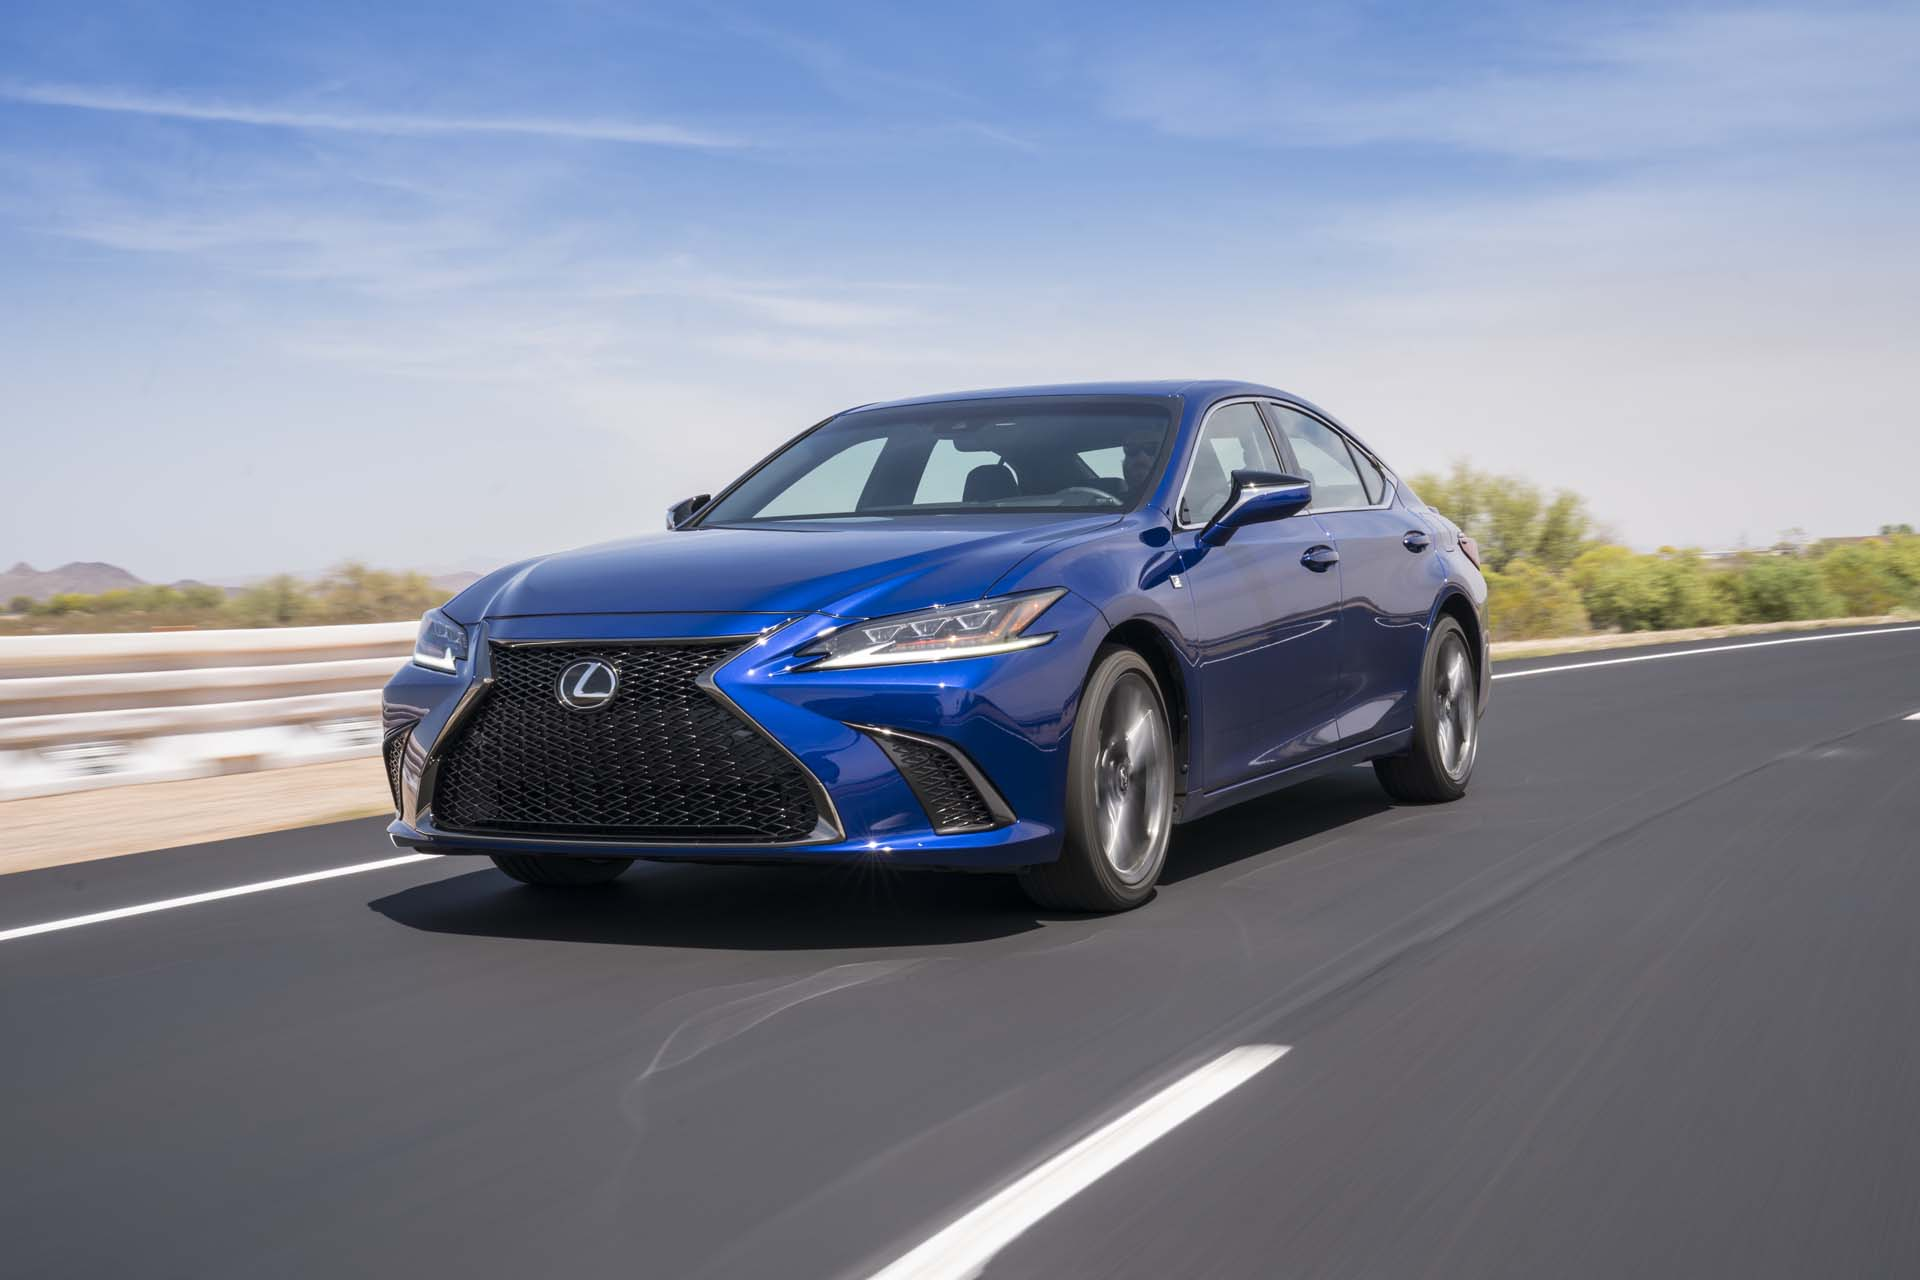 2020 Lexus Es 350 Release Date Price And Specifications